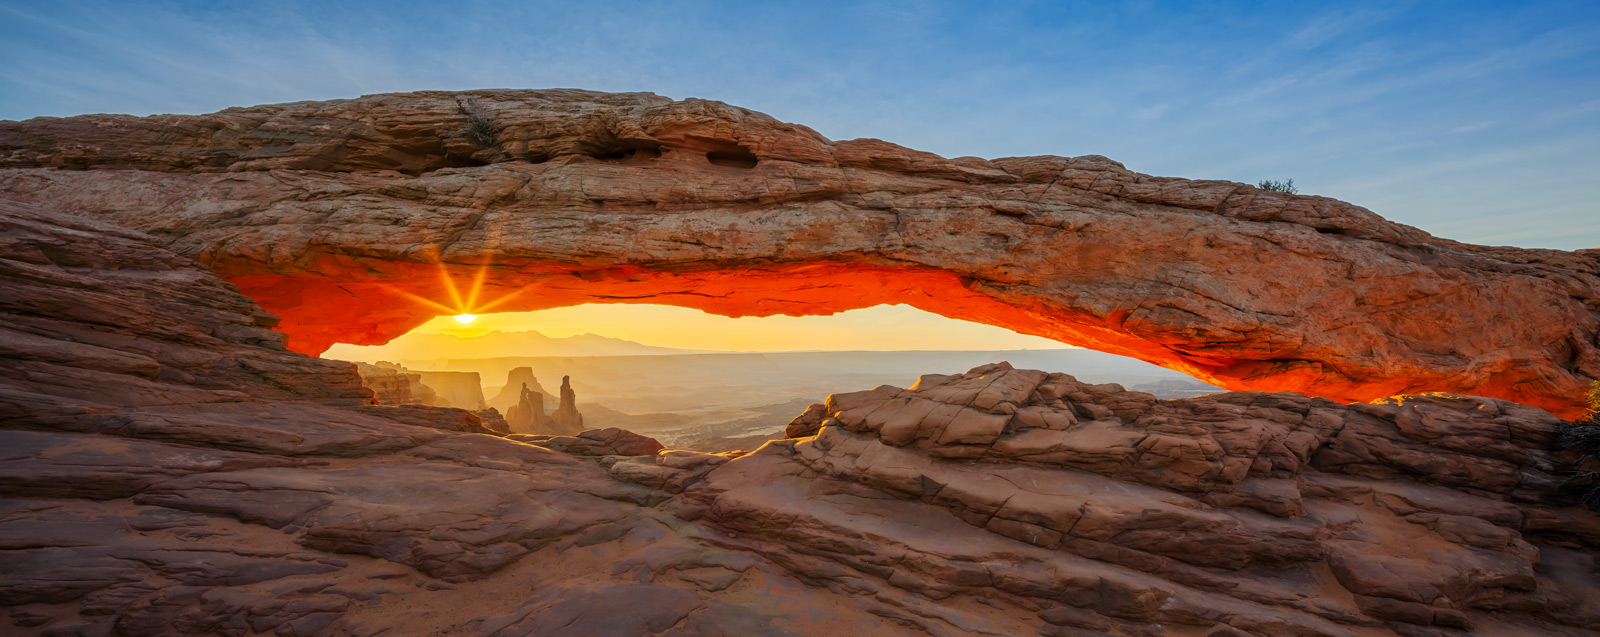 Utah, Canyonlands, National Park, mesa arch, sunrise